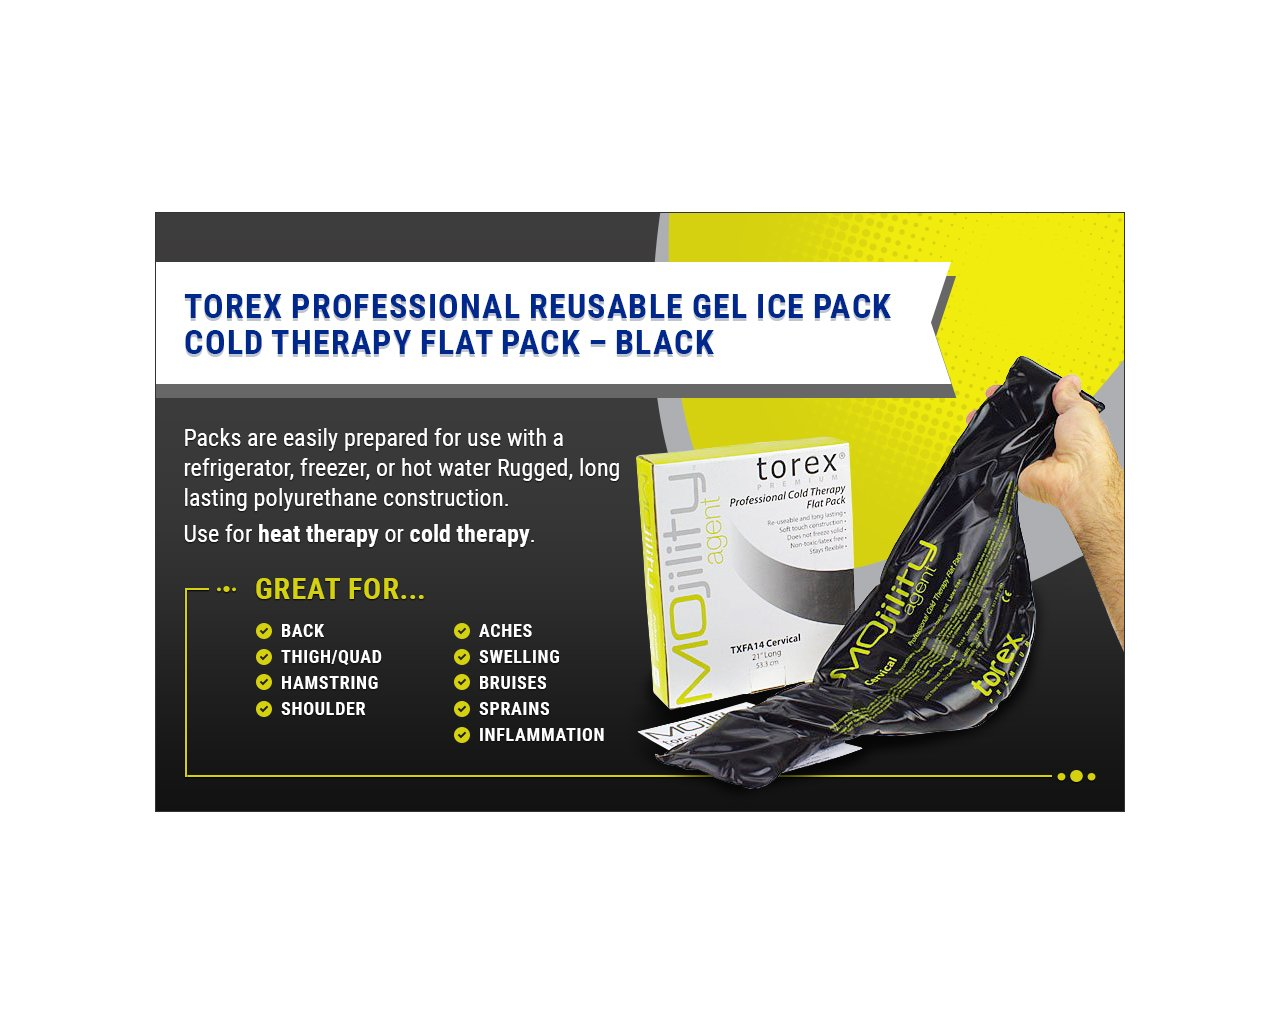 Torex Mojility - Professional Hot and Cold Therapy Flat Pack - Reusable Gel Ice Pack (Standard Black 10'' x 13'') - Great for Back, Shoulder, Leg, Swelling, Bruises, Sprains, Inflammation